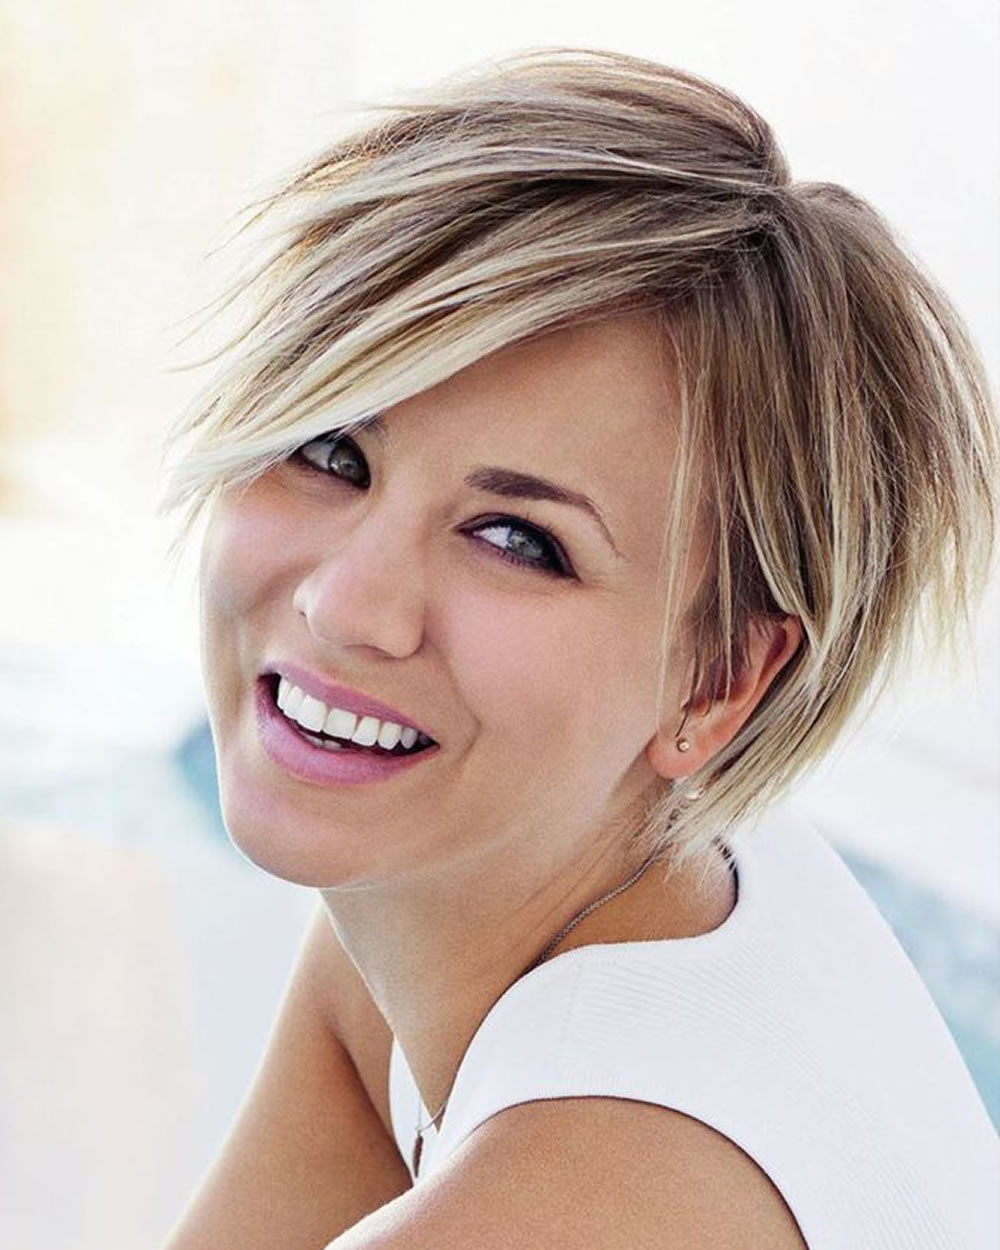 Short Hairstyles For Round Face And Thick Hair | All Hairstyles With Short Haircuts For Round Faces And Thick Hair (View 6 of 25)